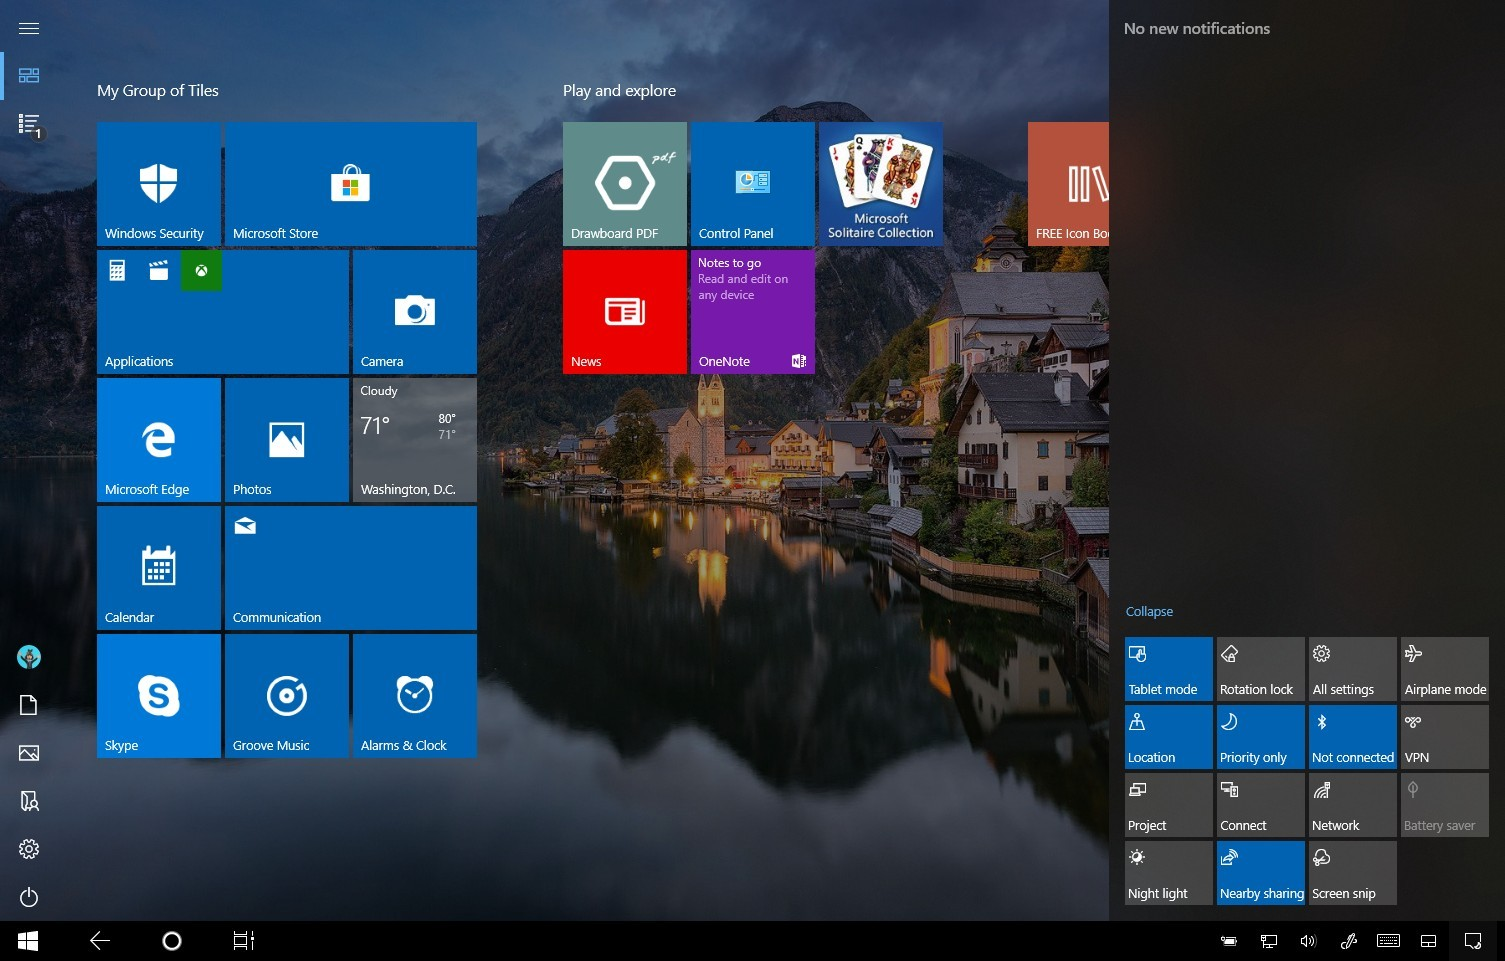 How to enable tablet mode on Windows 10 \u2022 Pureinfotech